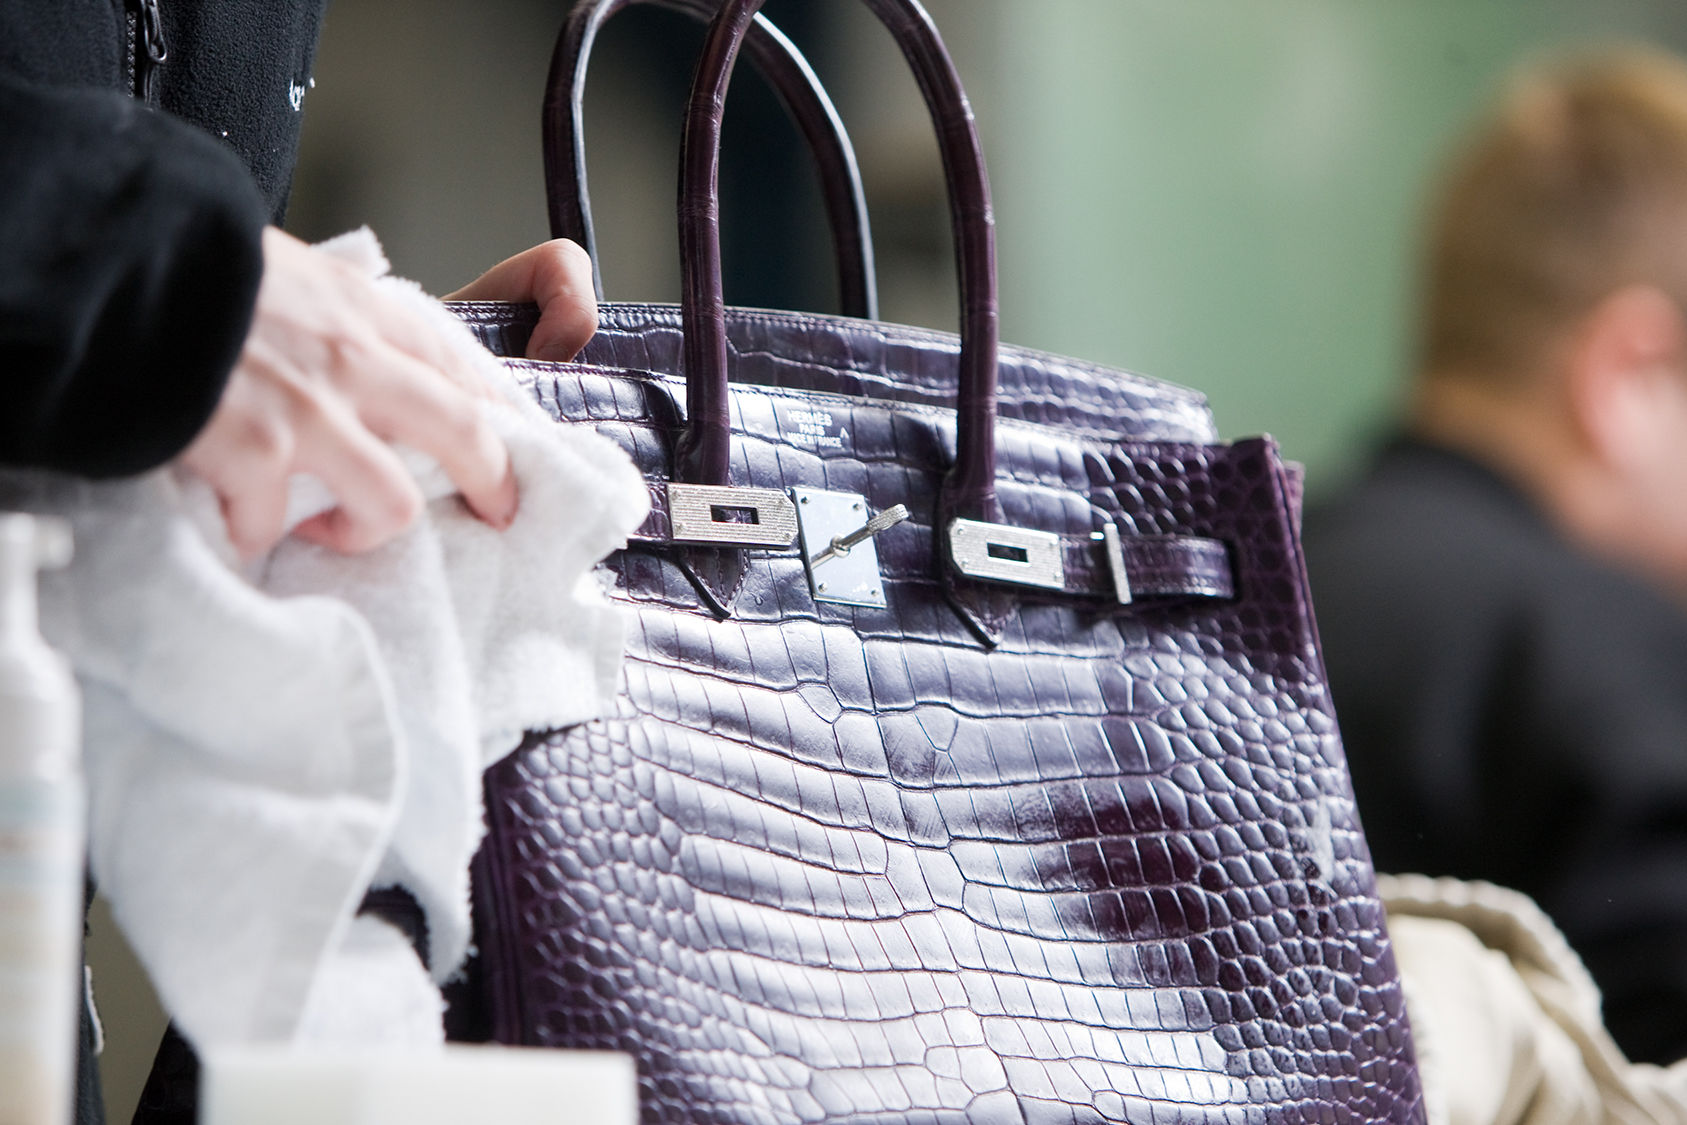 How to Clean and Care for Your Leather Handbag